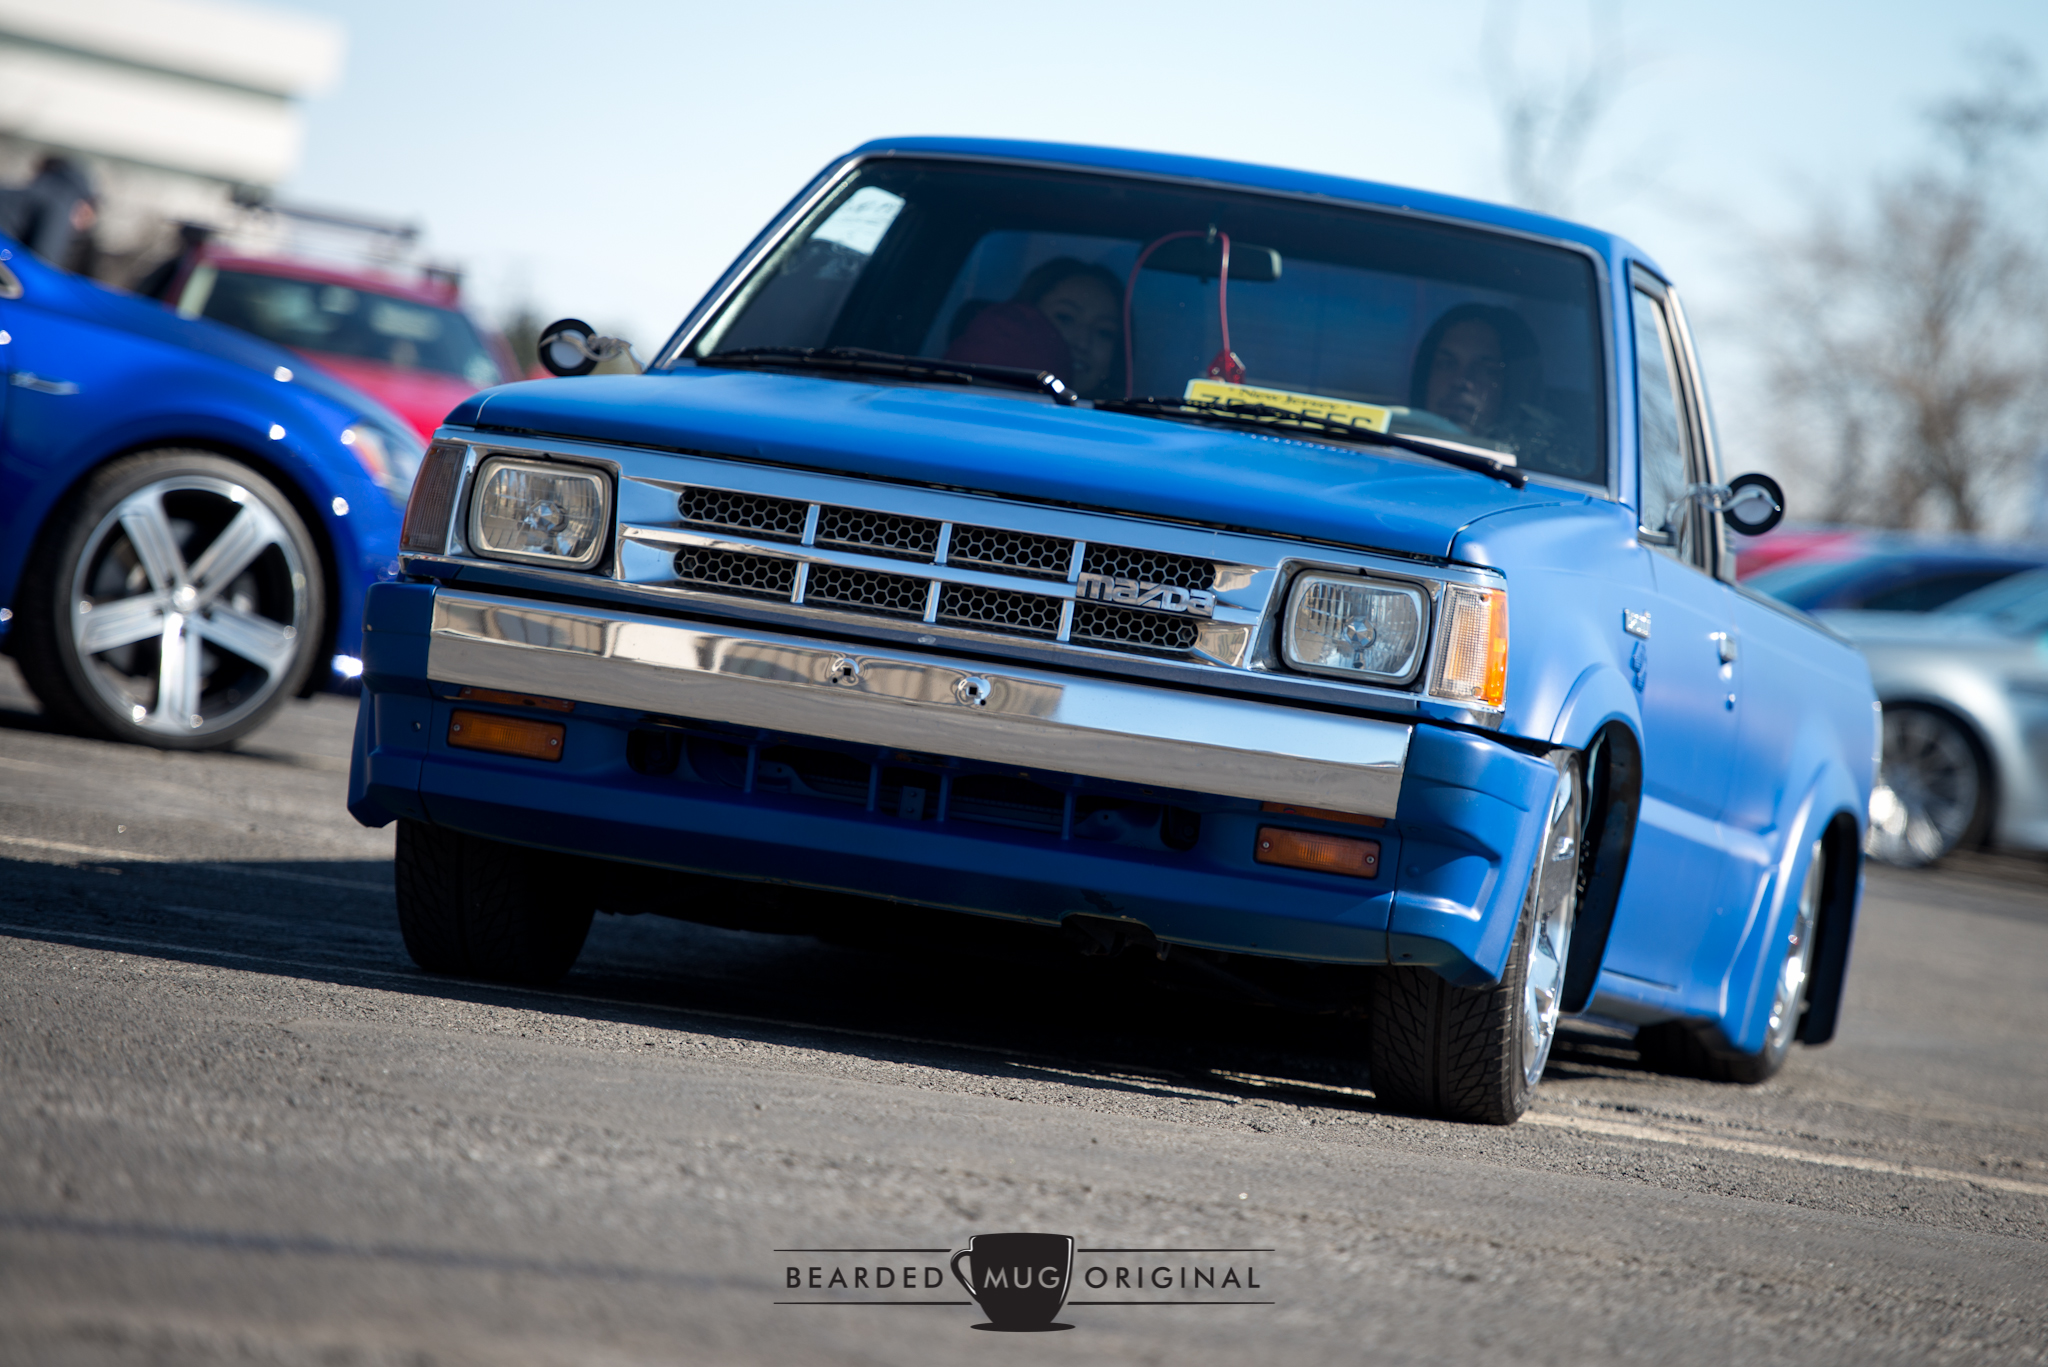 This mini truckin' Mazda could hit switches with the best of them, whether it's laying frame or tail draggin'.